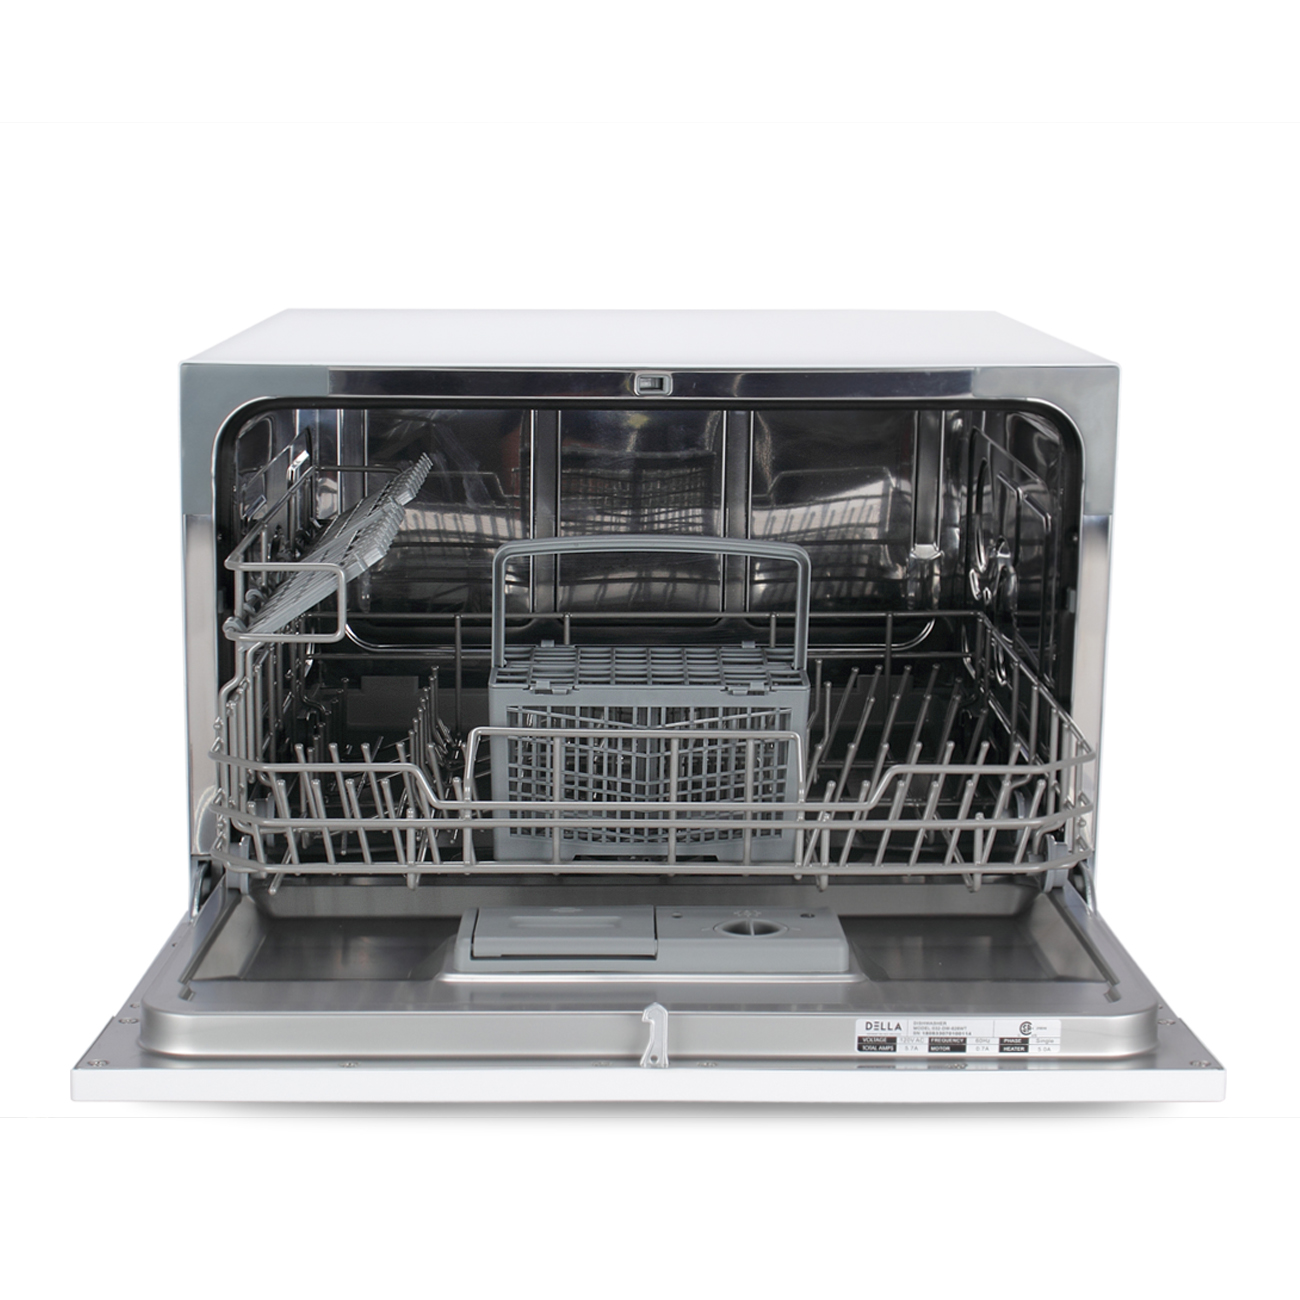 Countertop 6 Place Settings Stainless Steel Dishwasher For